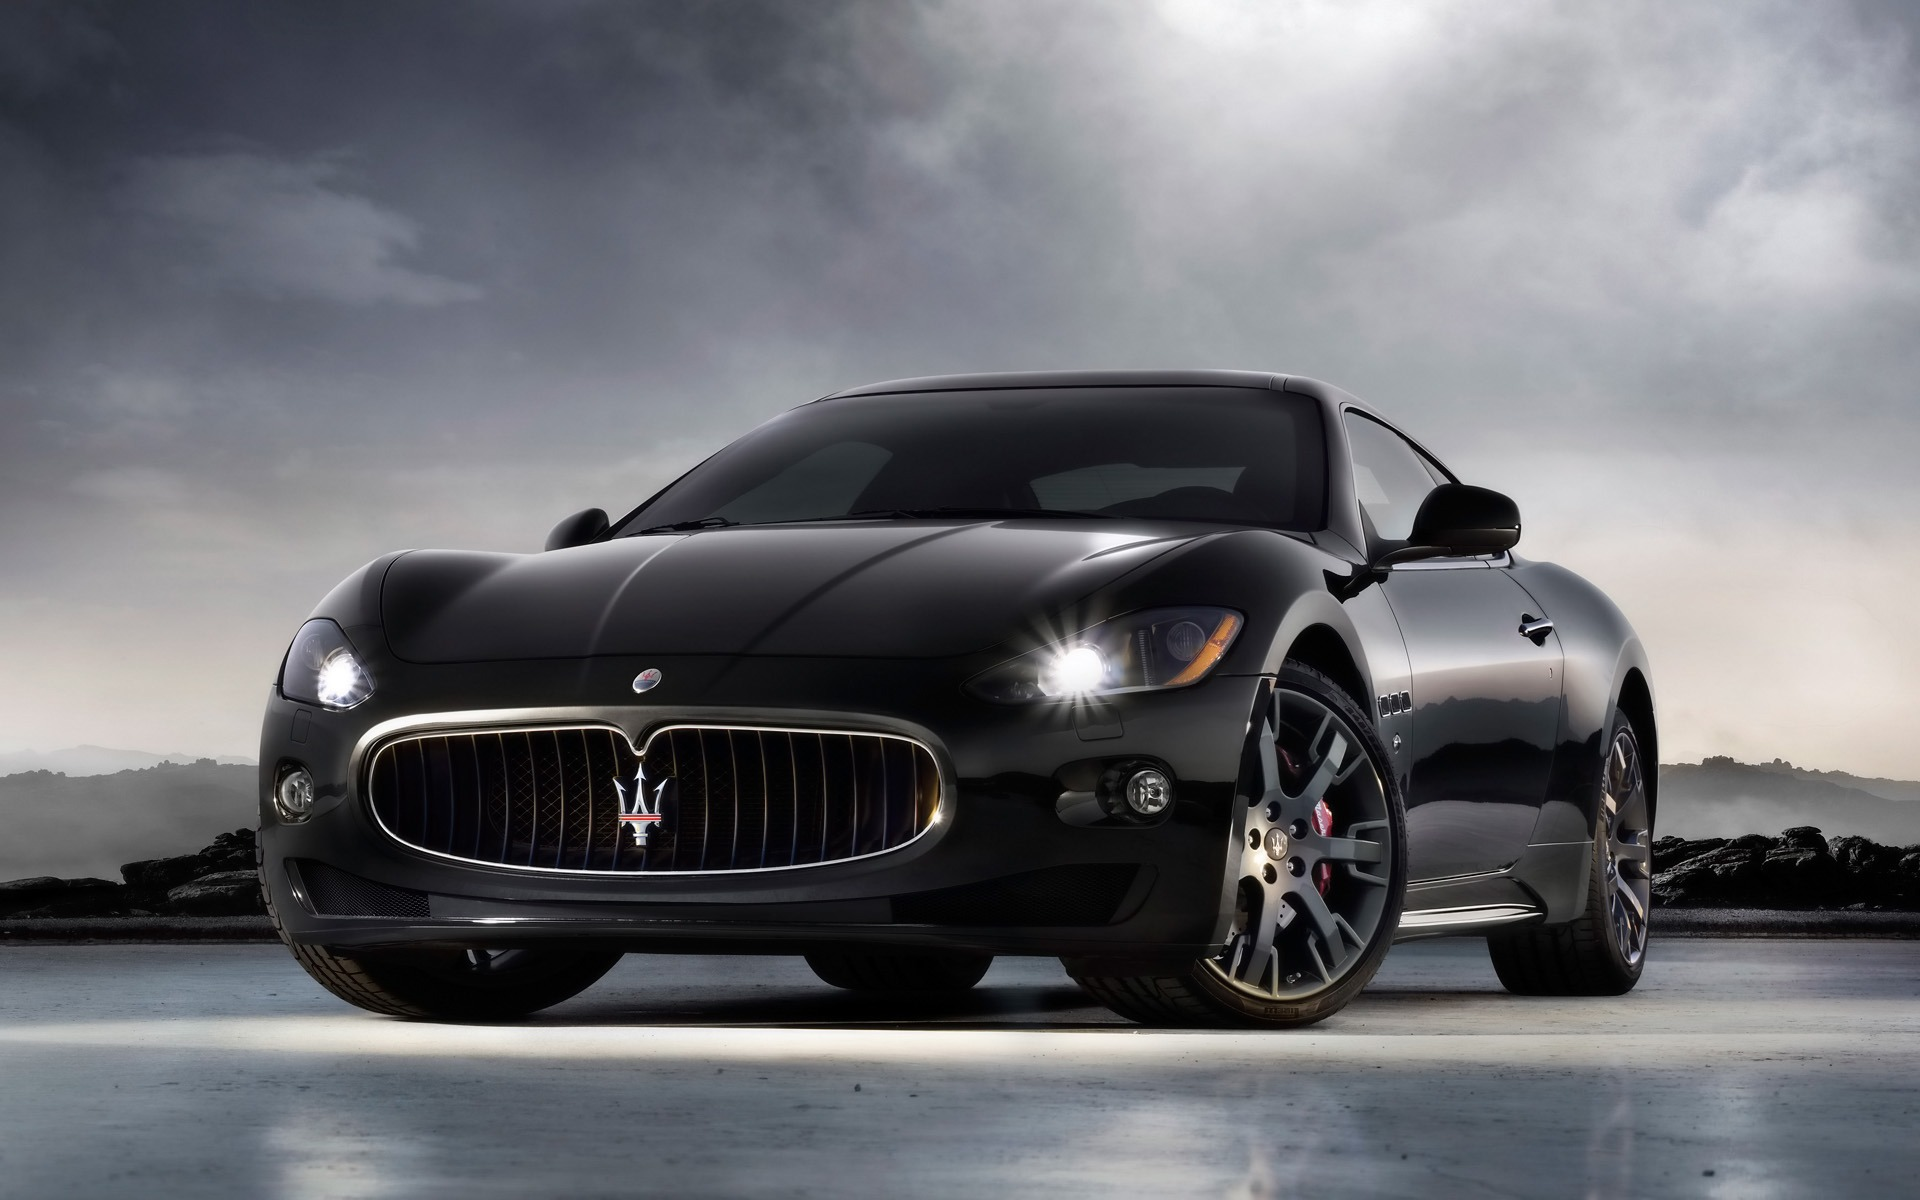 Maserati Gran Turismo S Wallpaper Maserati Cars Wallpapers in jpg